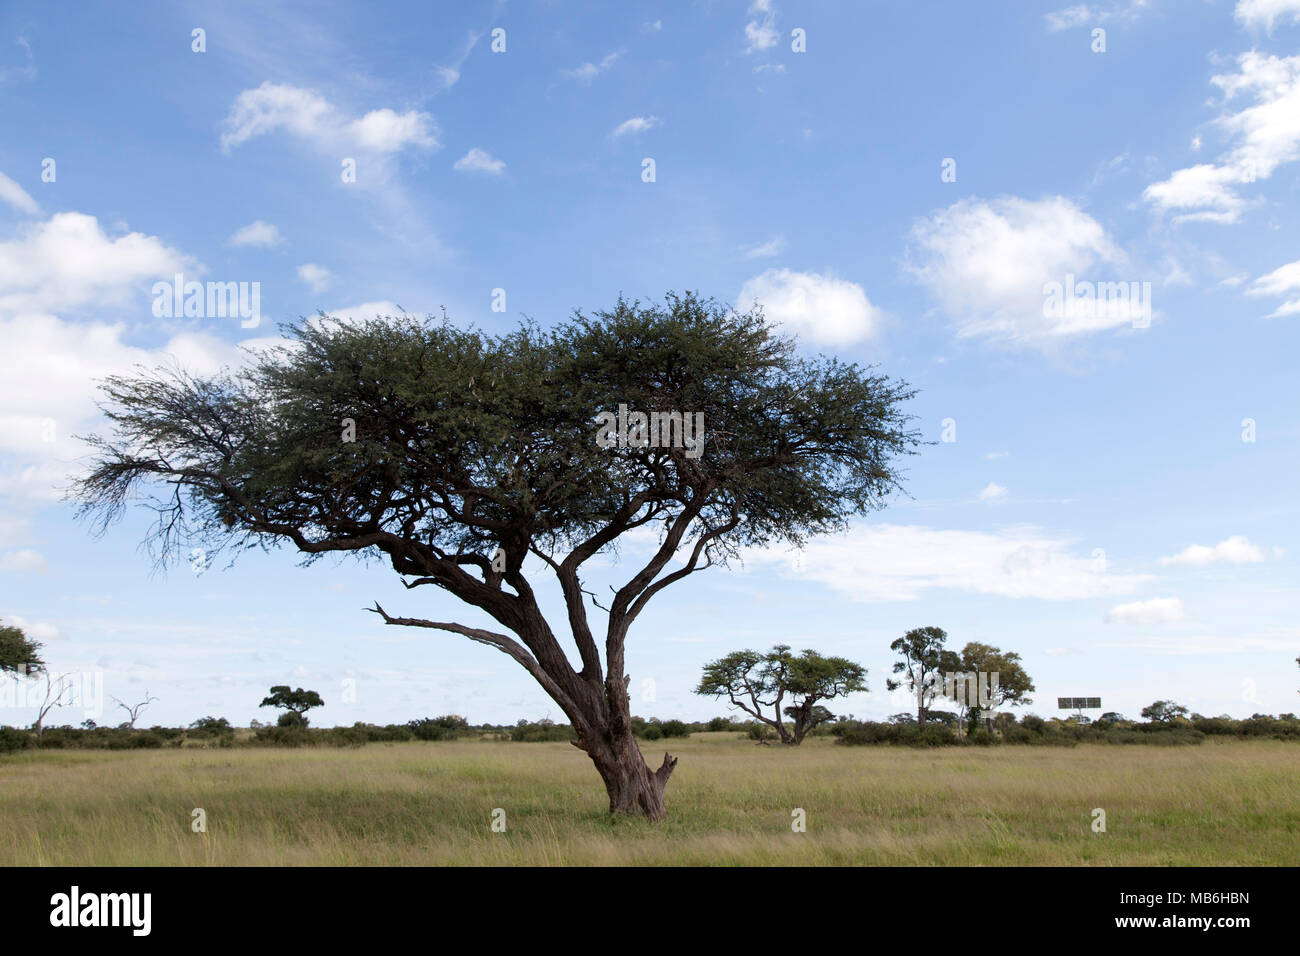 Acacia tree in Hwange National Park in Zimbabwe. Acacias are also known as wattles. - Stock Image